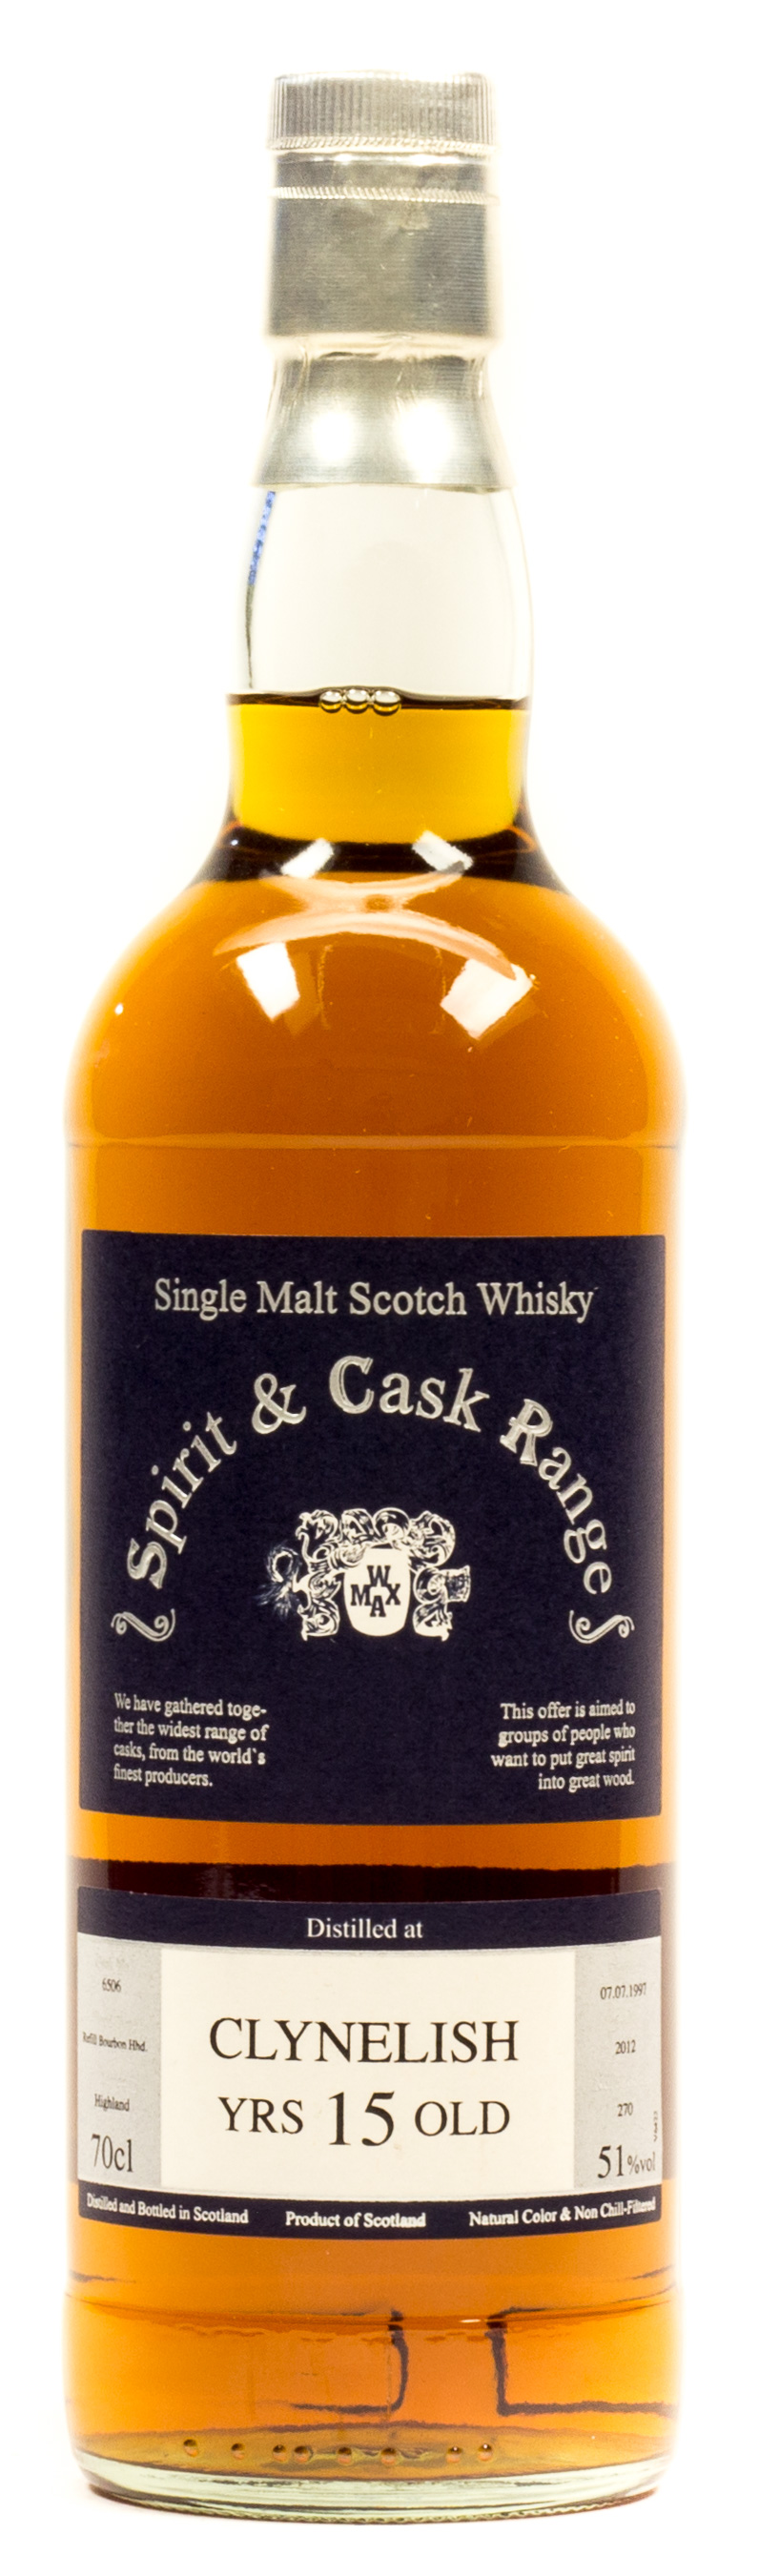 Clynelish 15 Years (Spirit & Cask Range) Single Malt Scotch Whisky 0,7 l